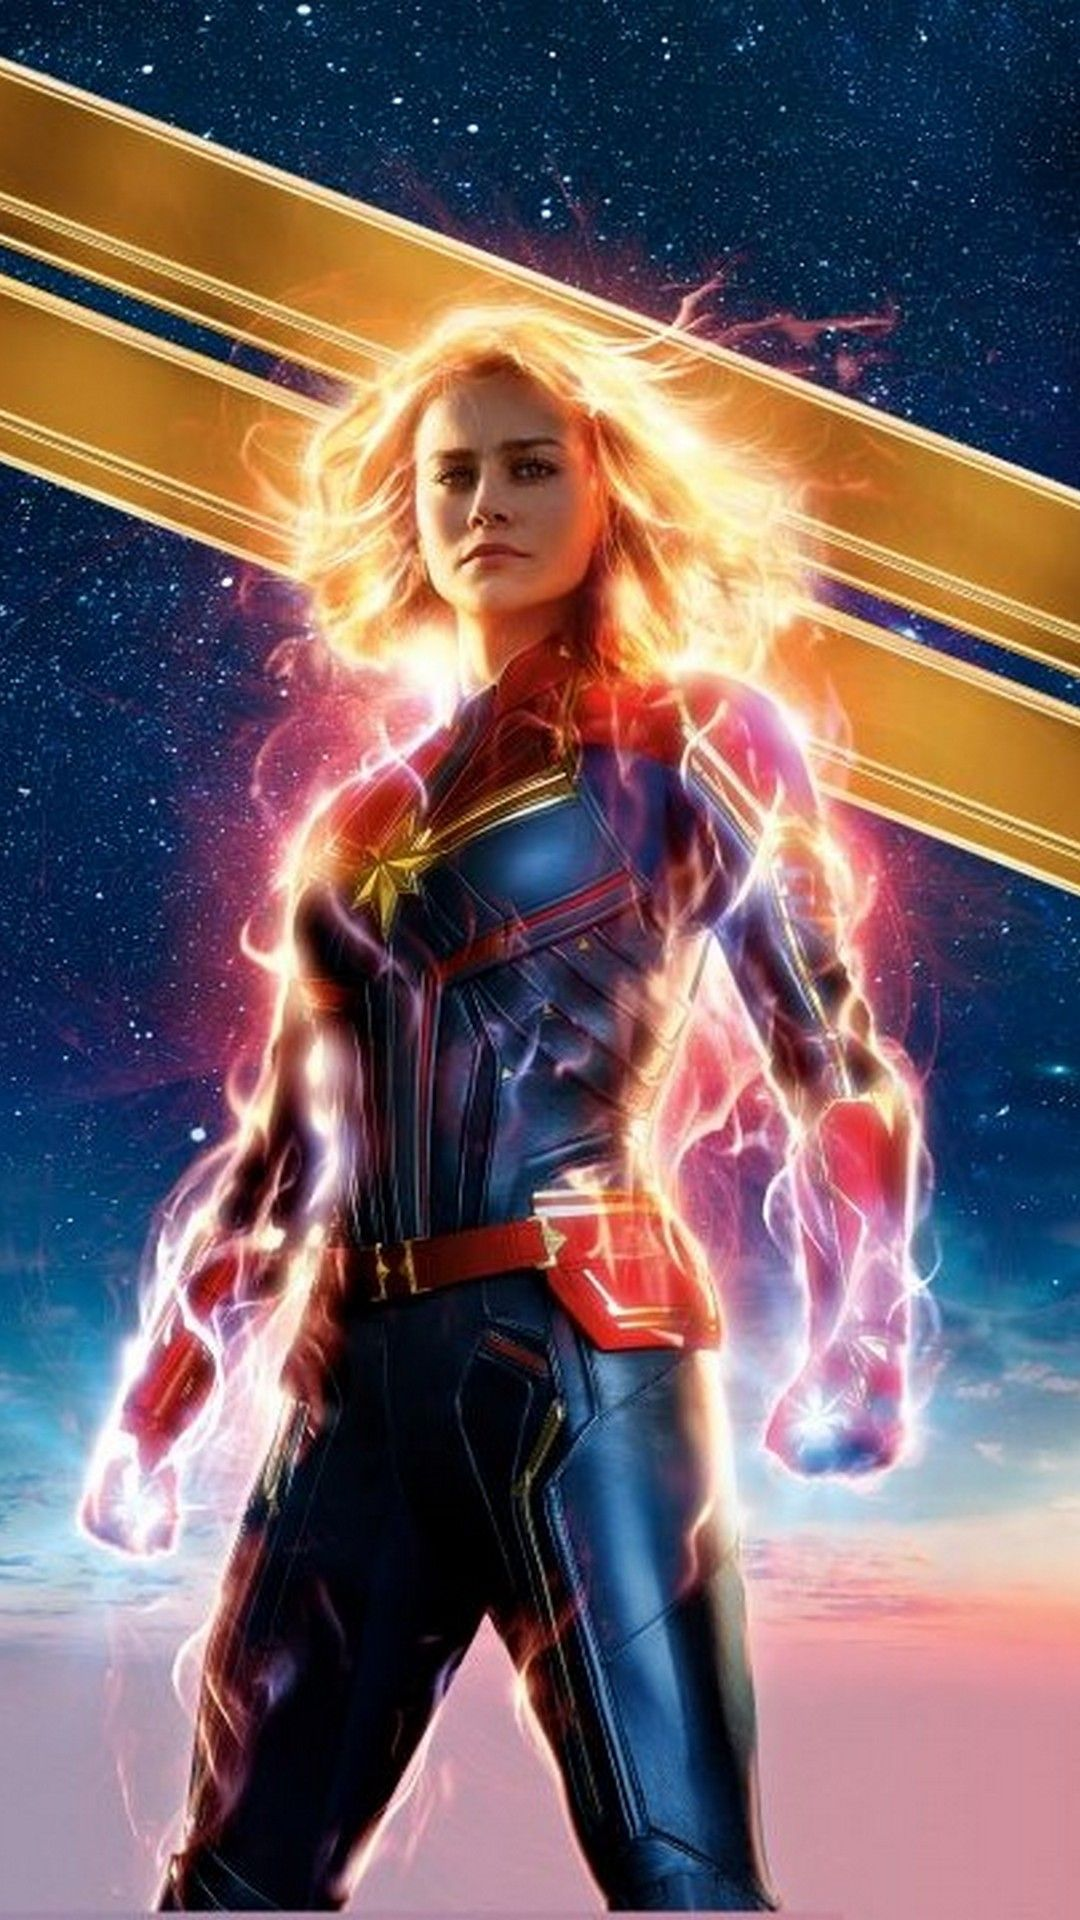 Marvel Image Hupages Download Iphone Wallpapers Captain Marvel Powers Captain Marvel Marvel Superheroes